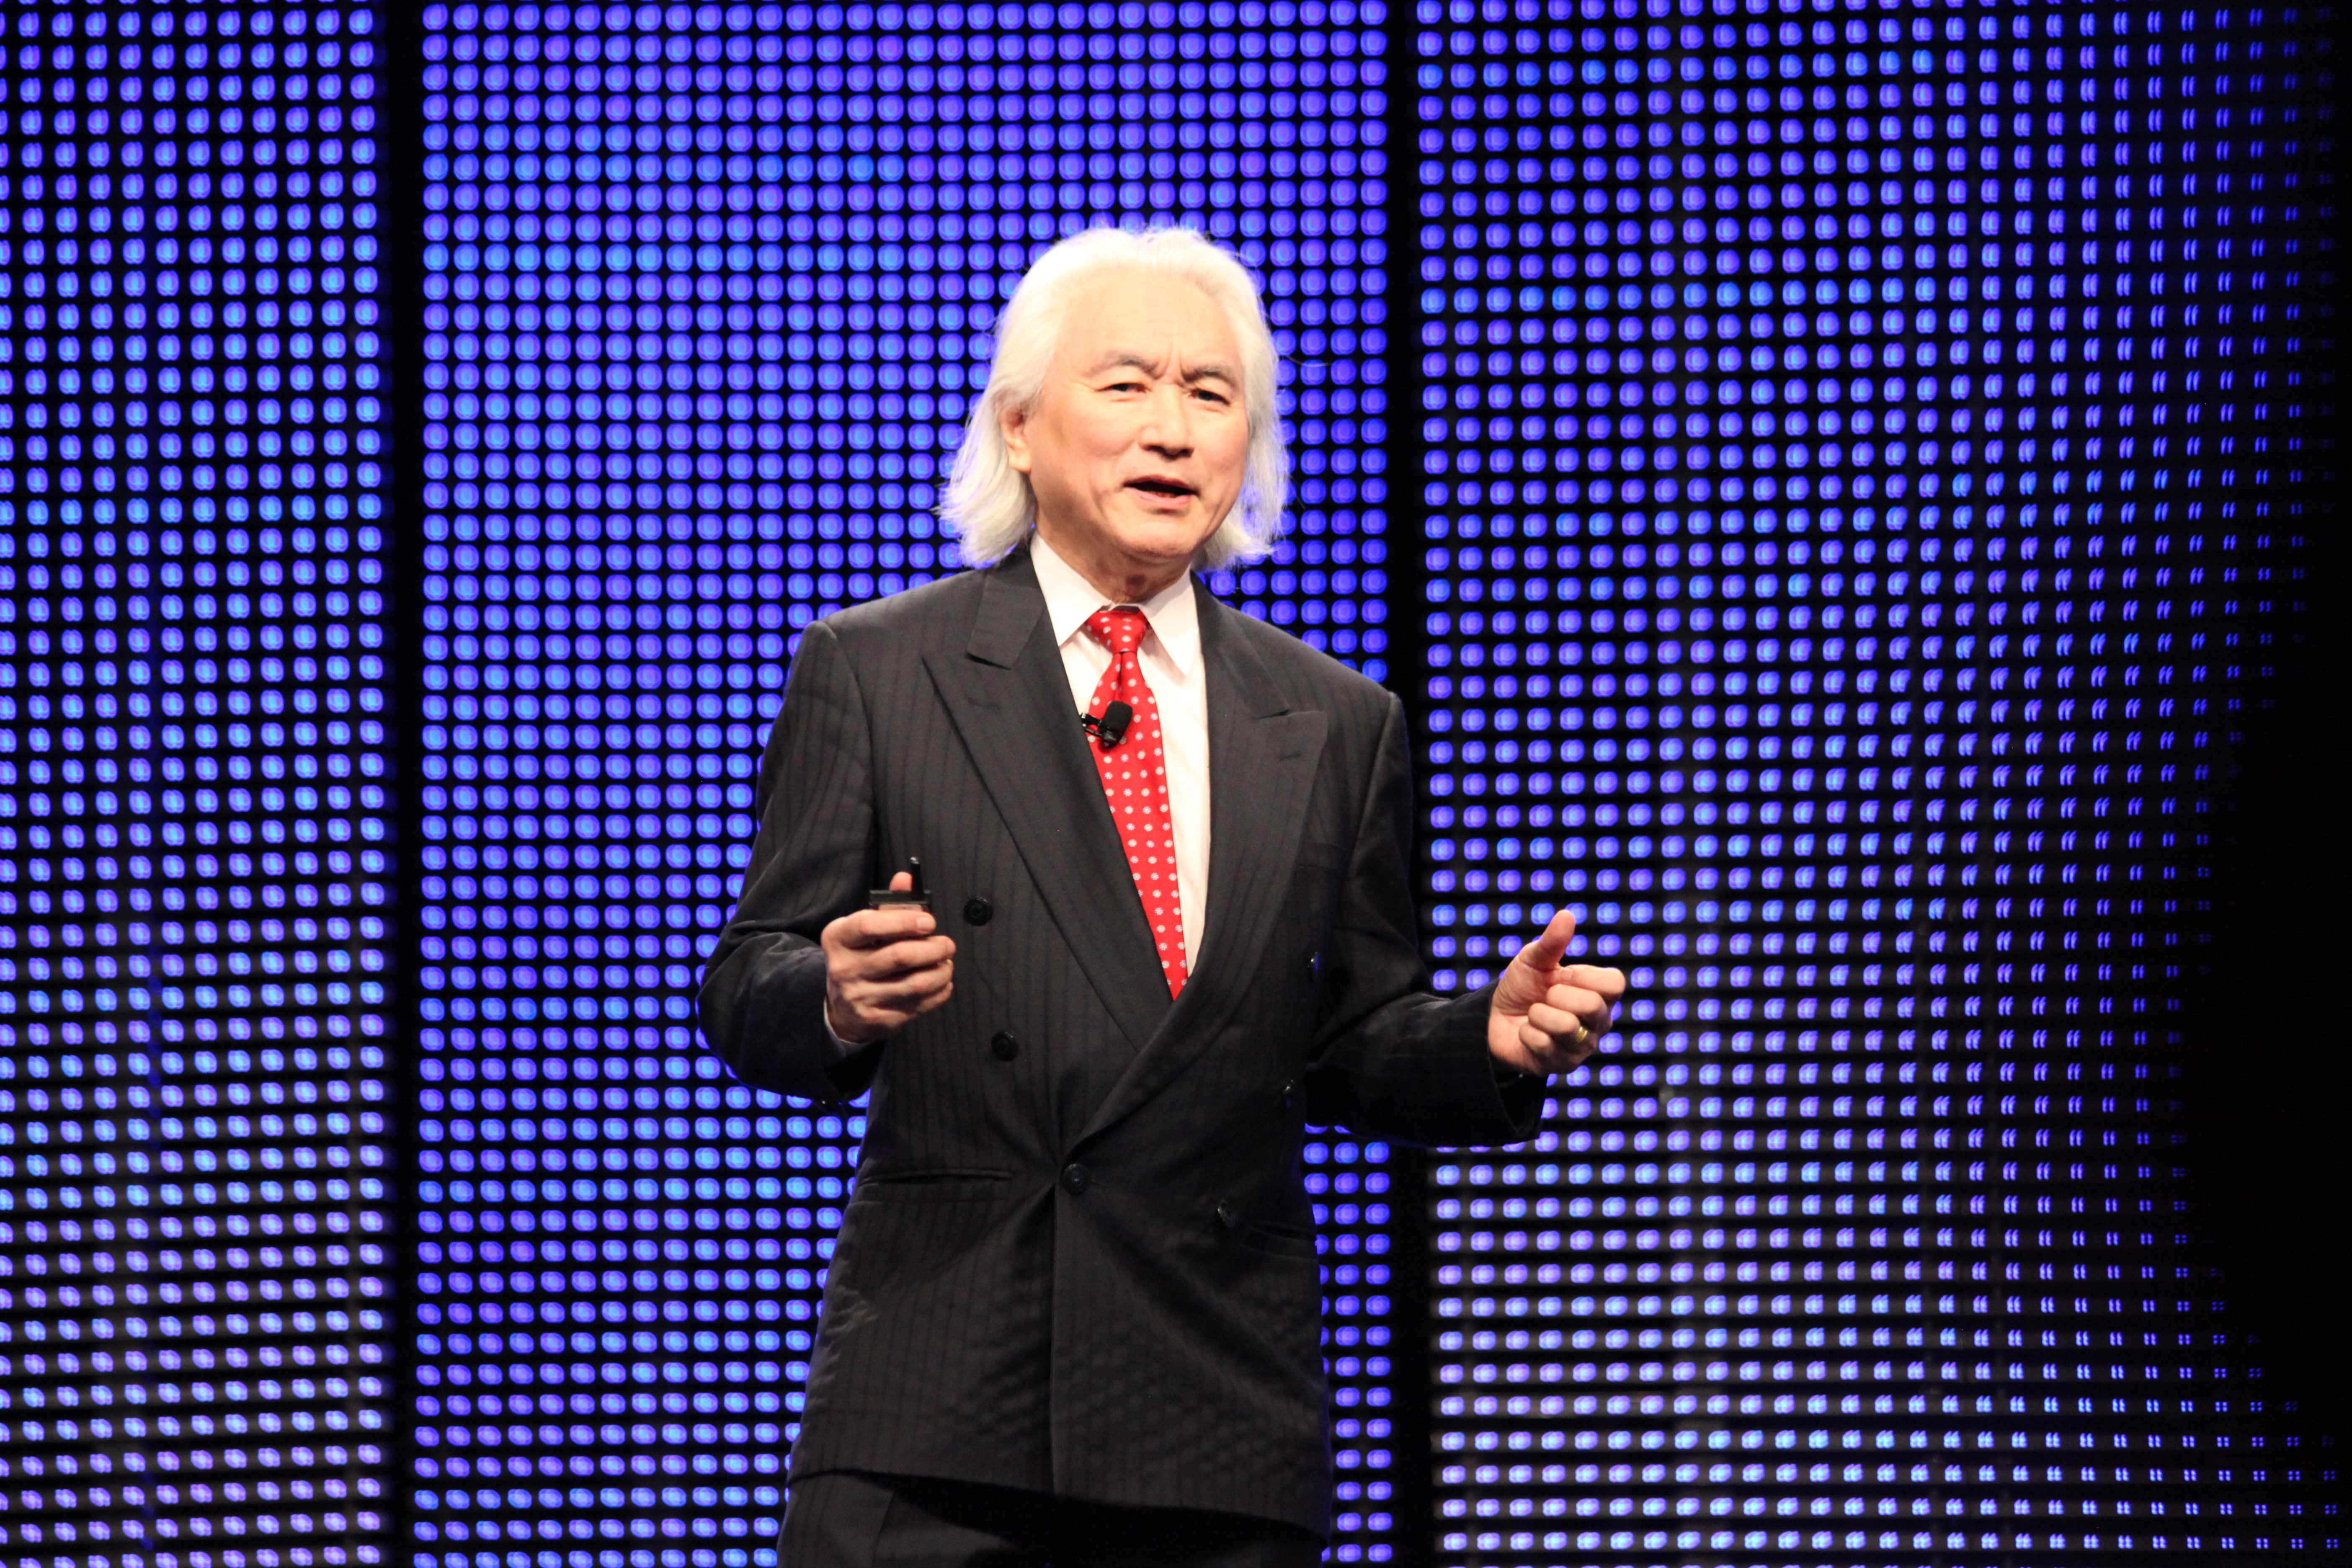 SOLIDWORKS World 2015: Tuesday General Session Recap